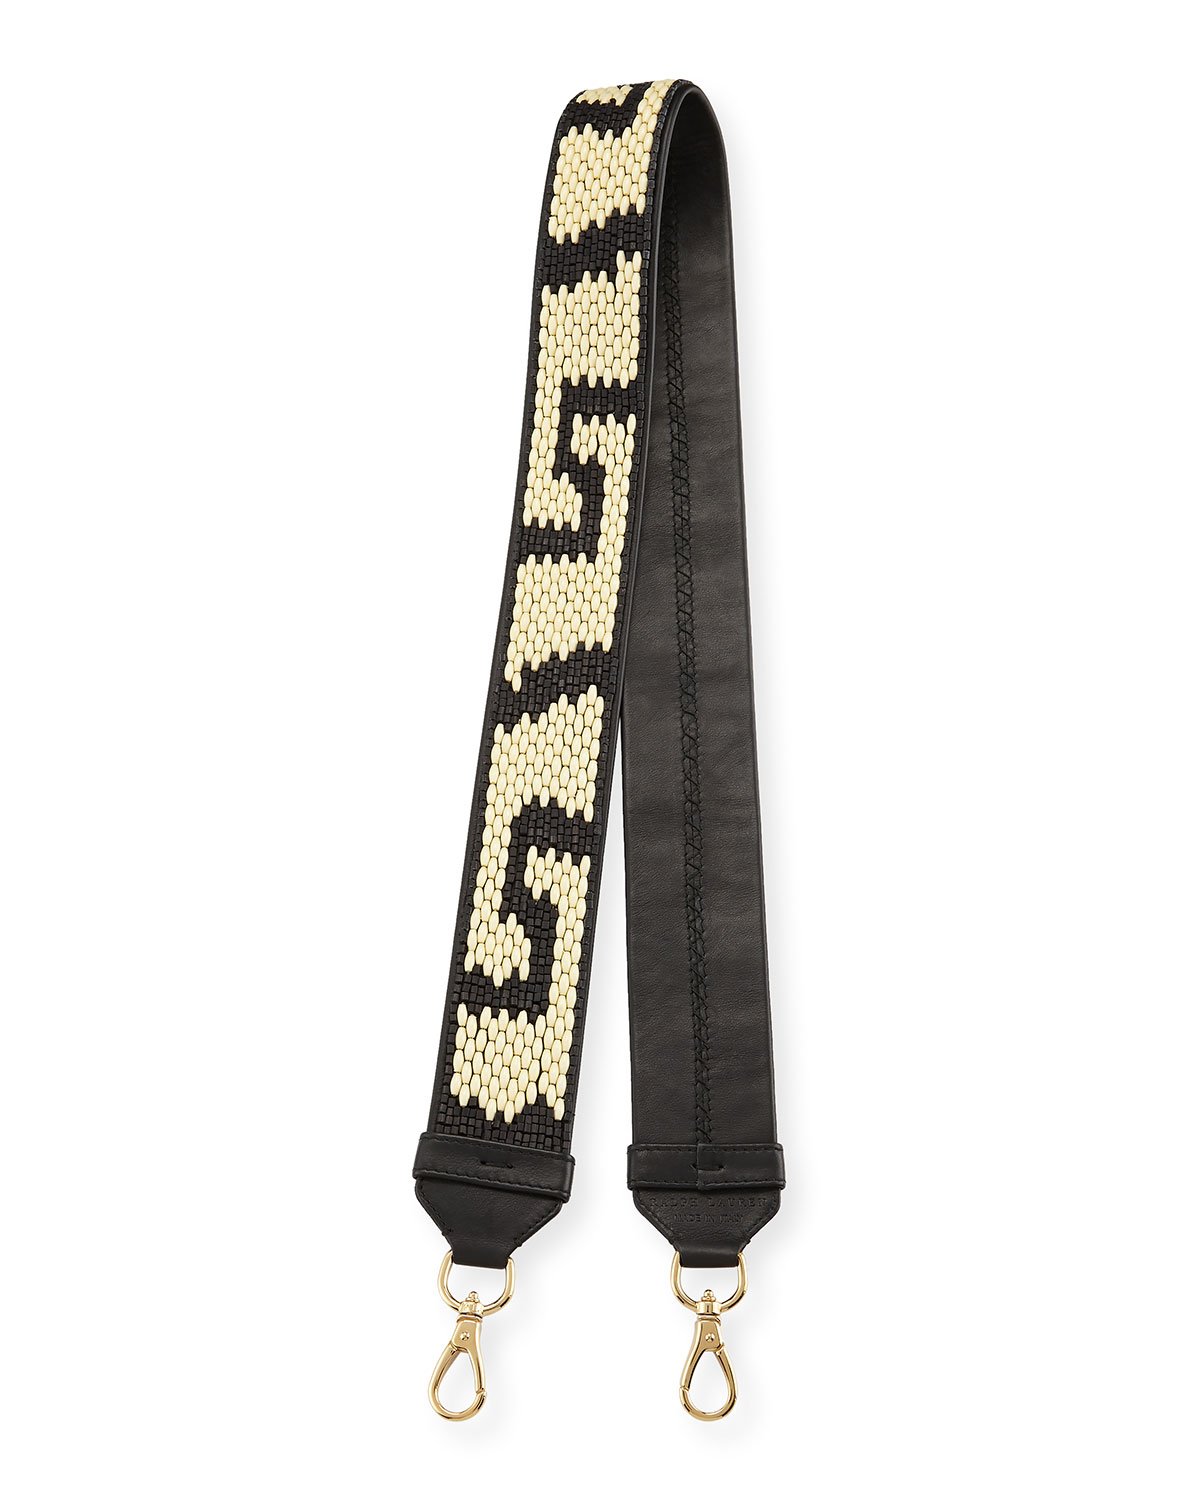 Beaded Leather Handbag Strap